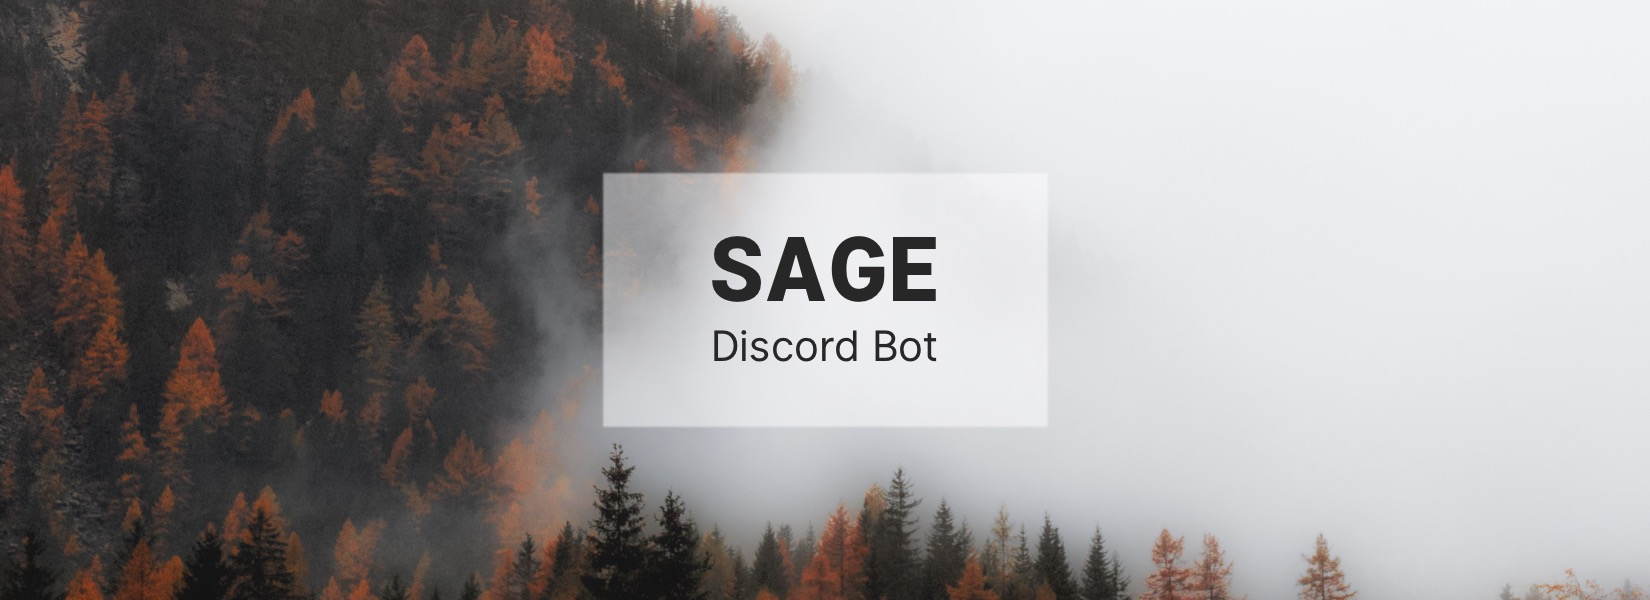 Announcing SAGE for Discord